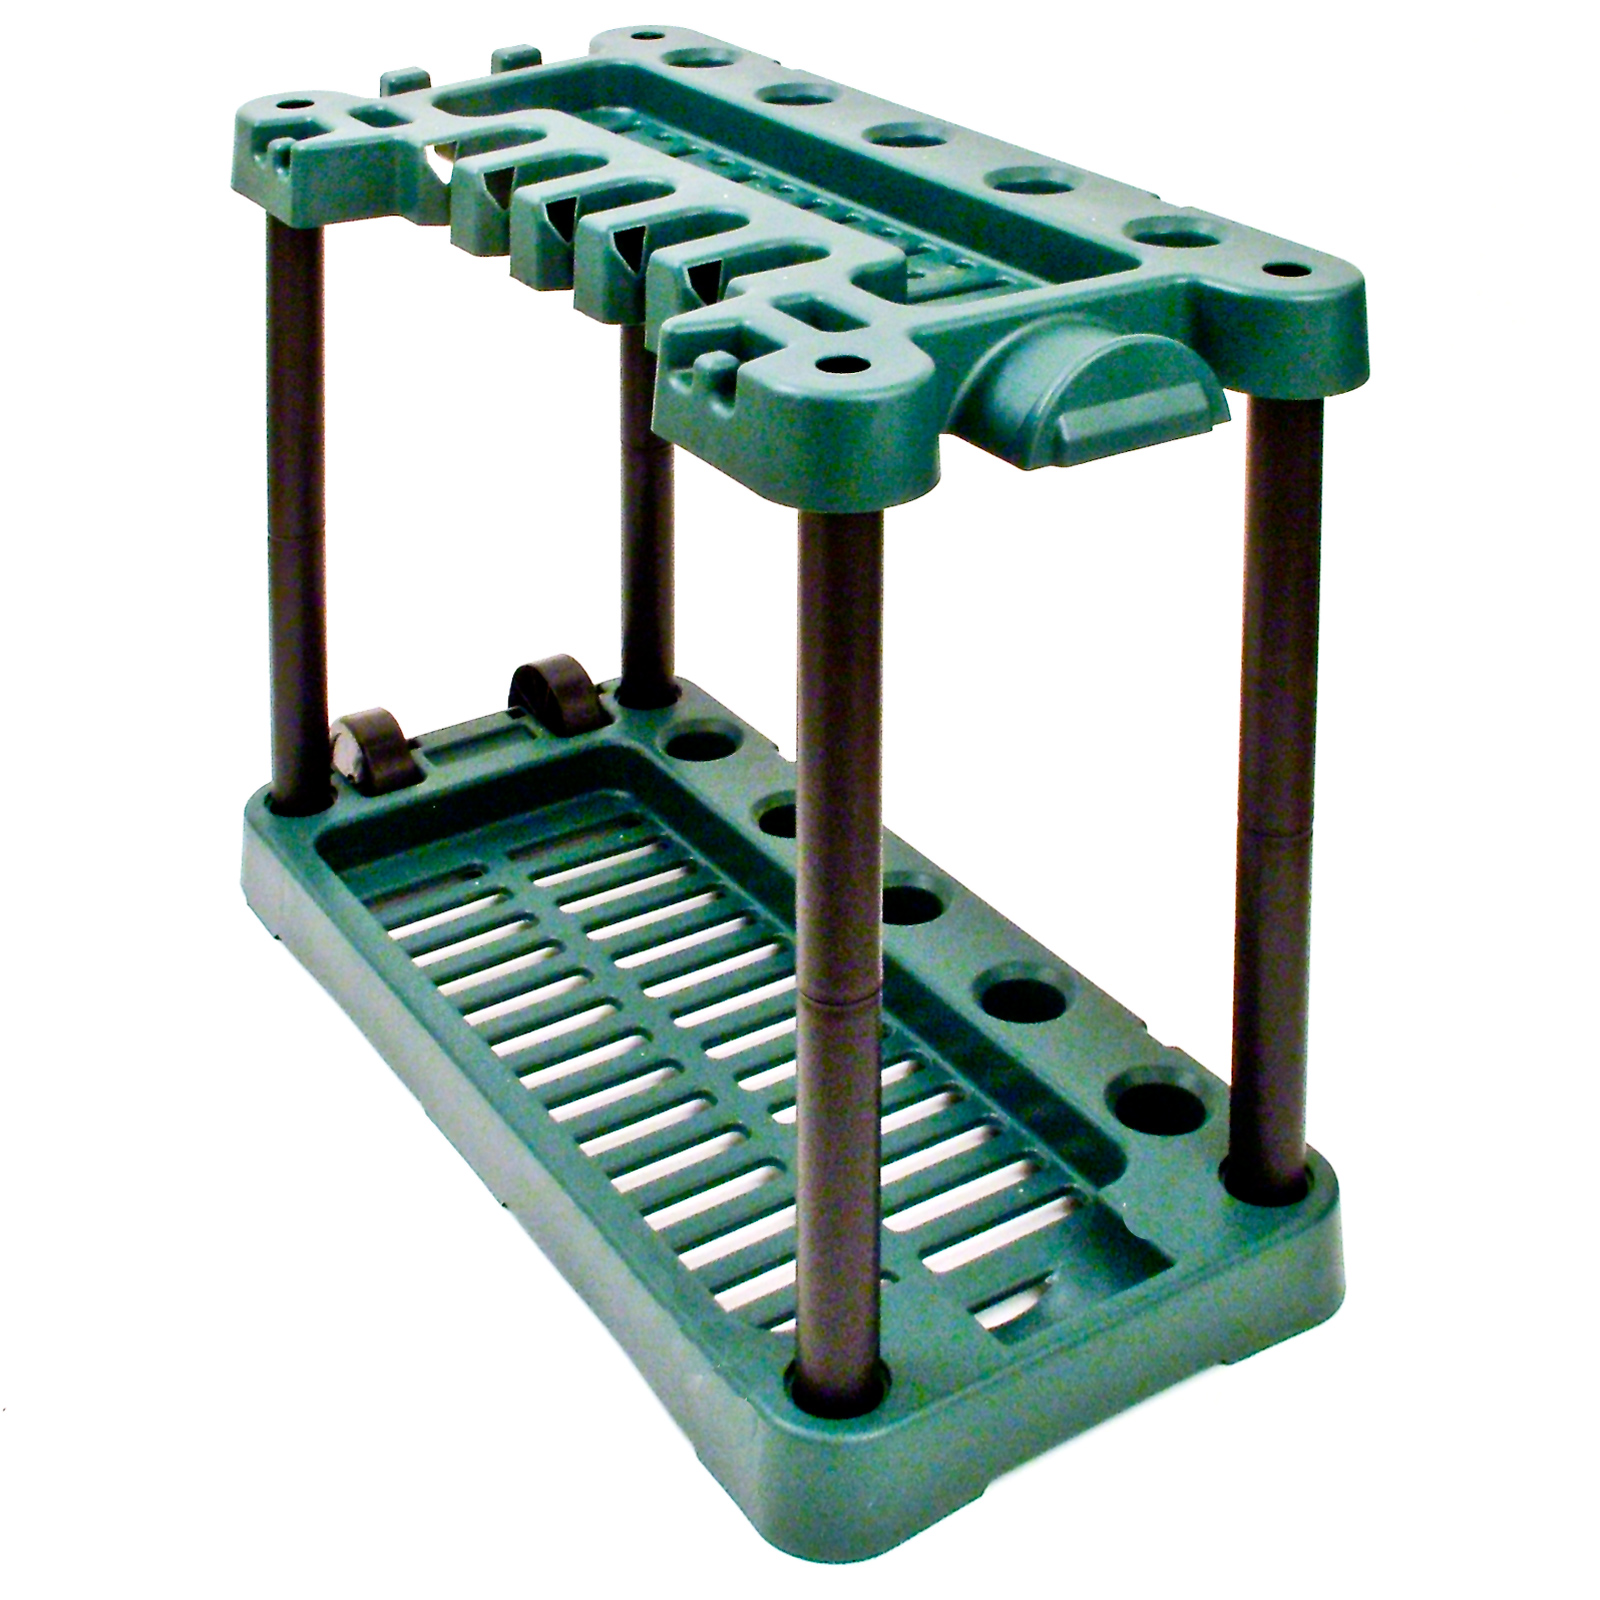 Garden Caddy On Wheels : Garden tool storage rack holder on wheels shed gardening